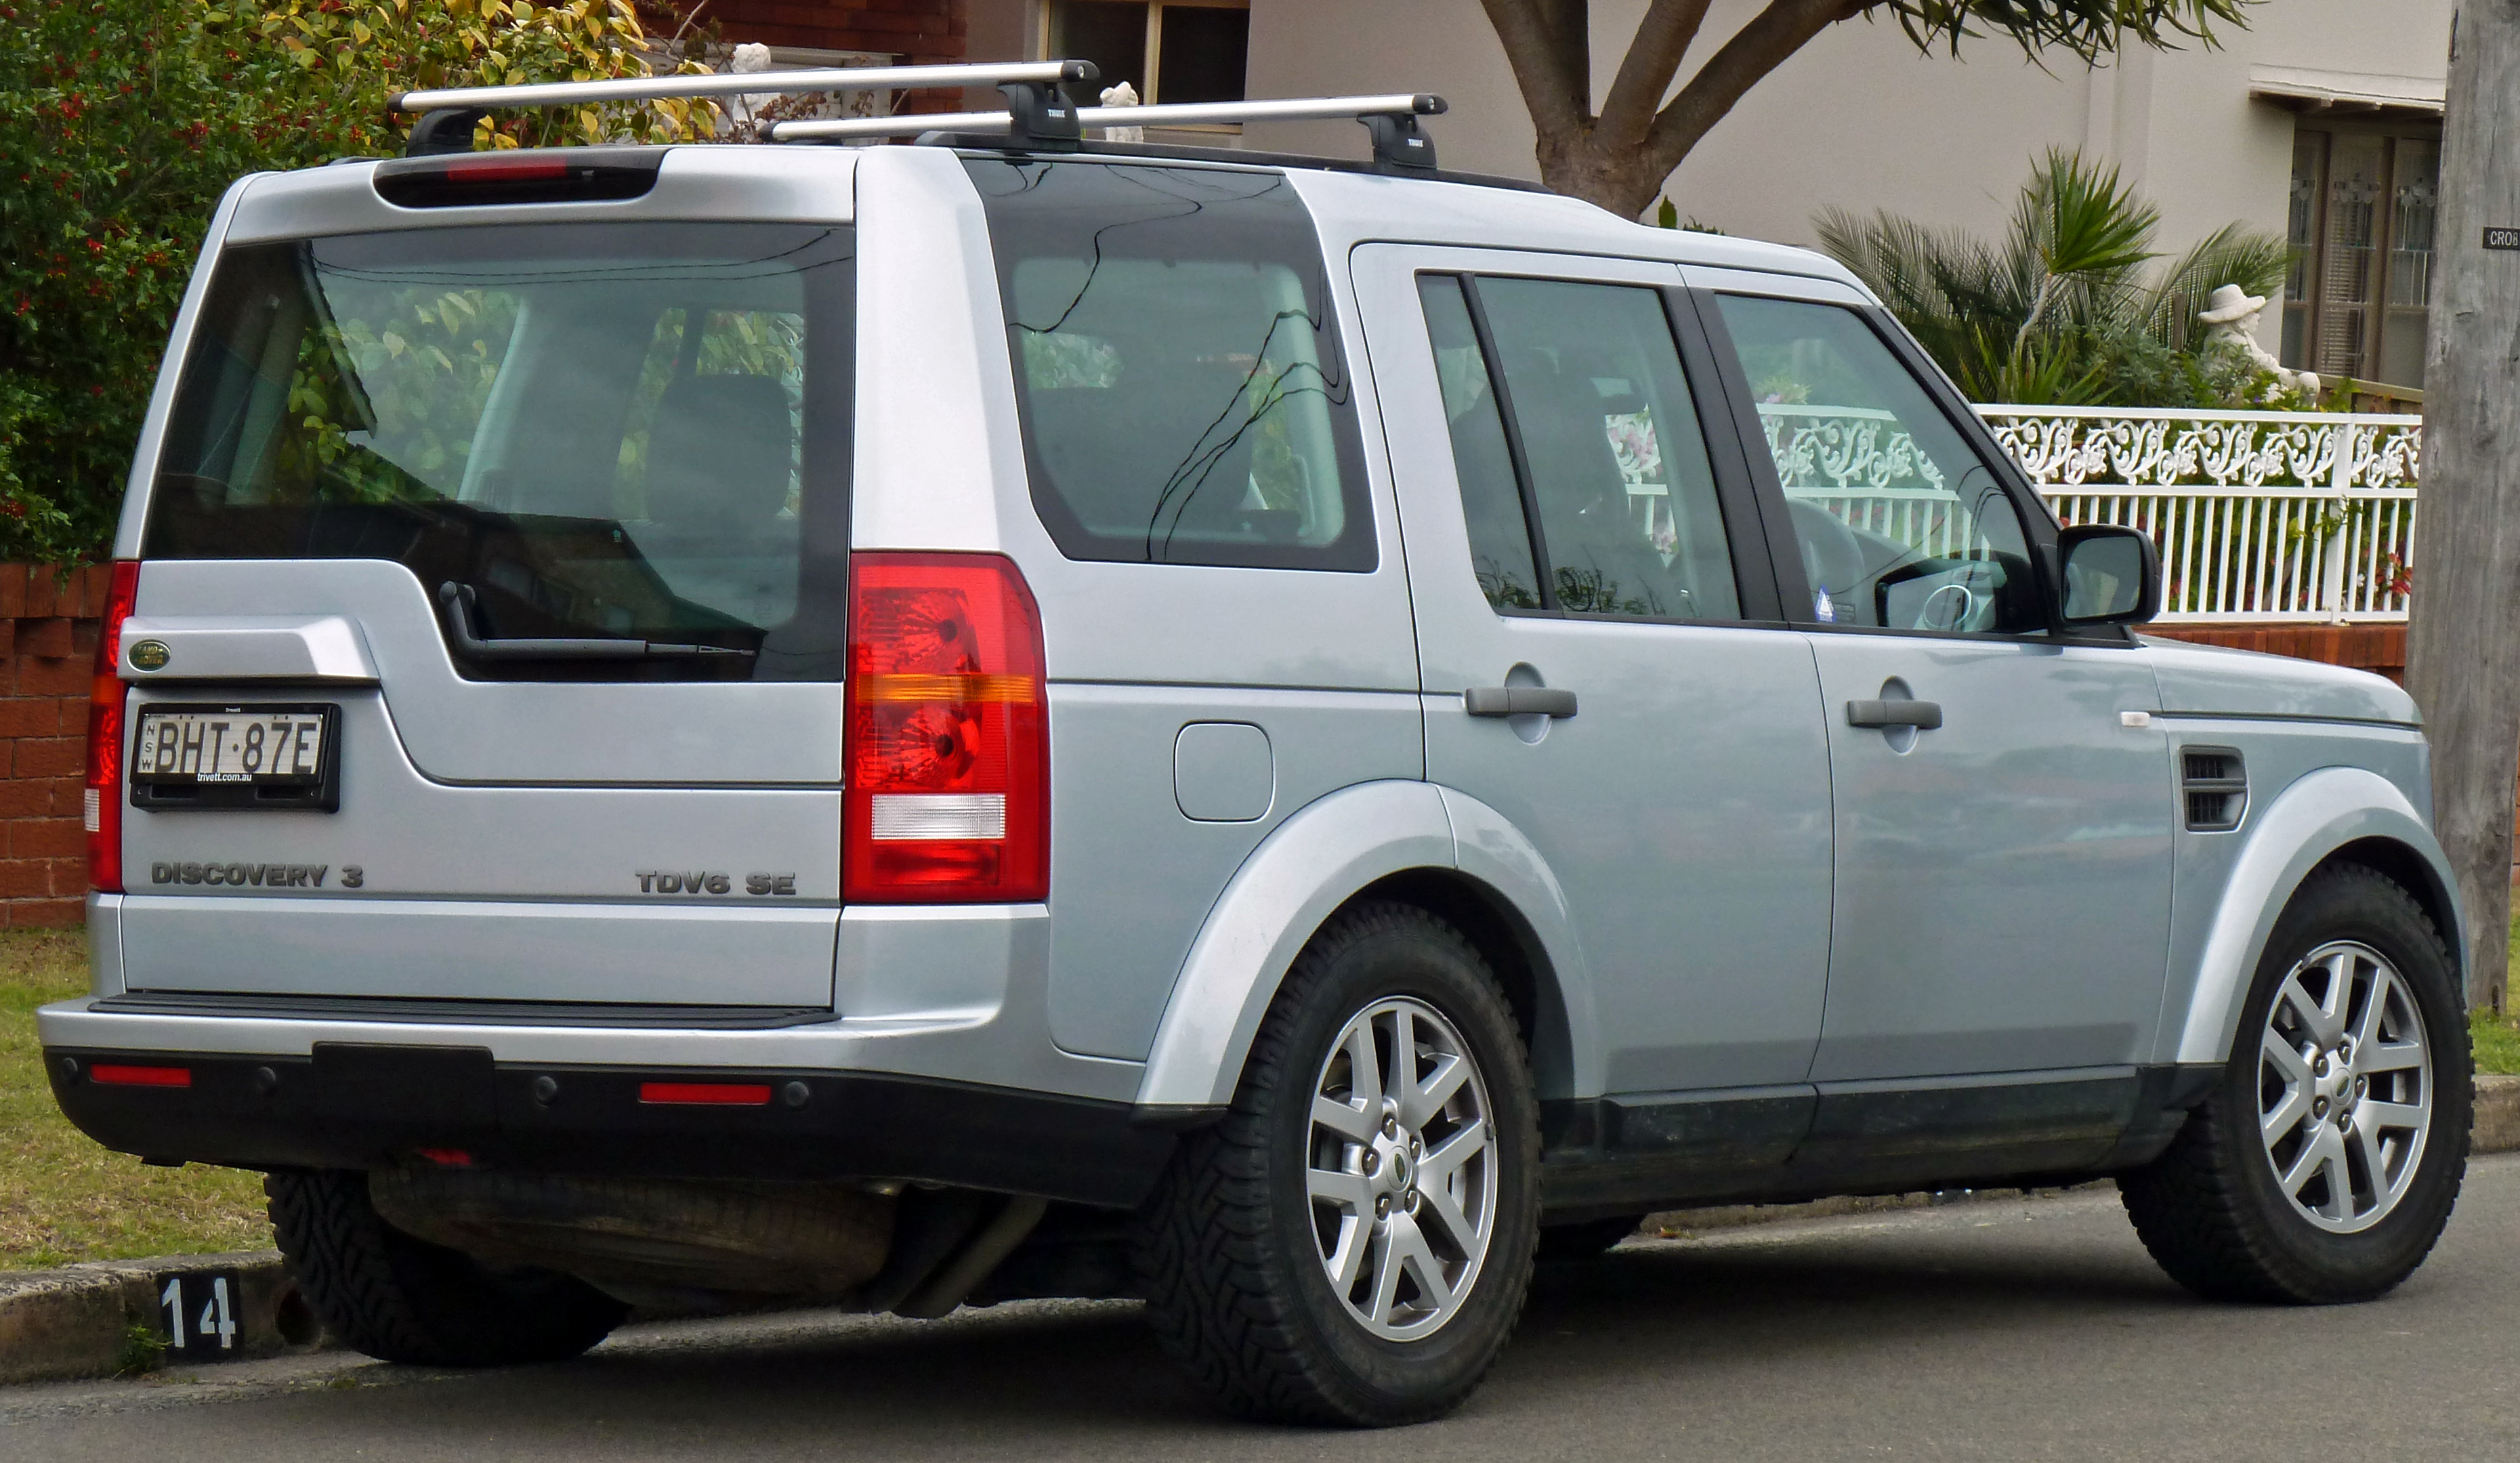 Land rover discovery images pictures becuo